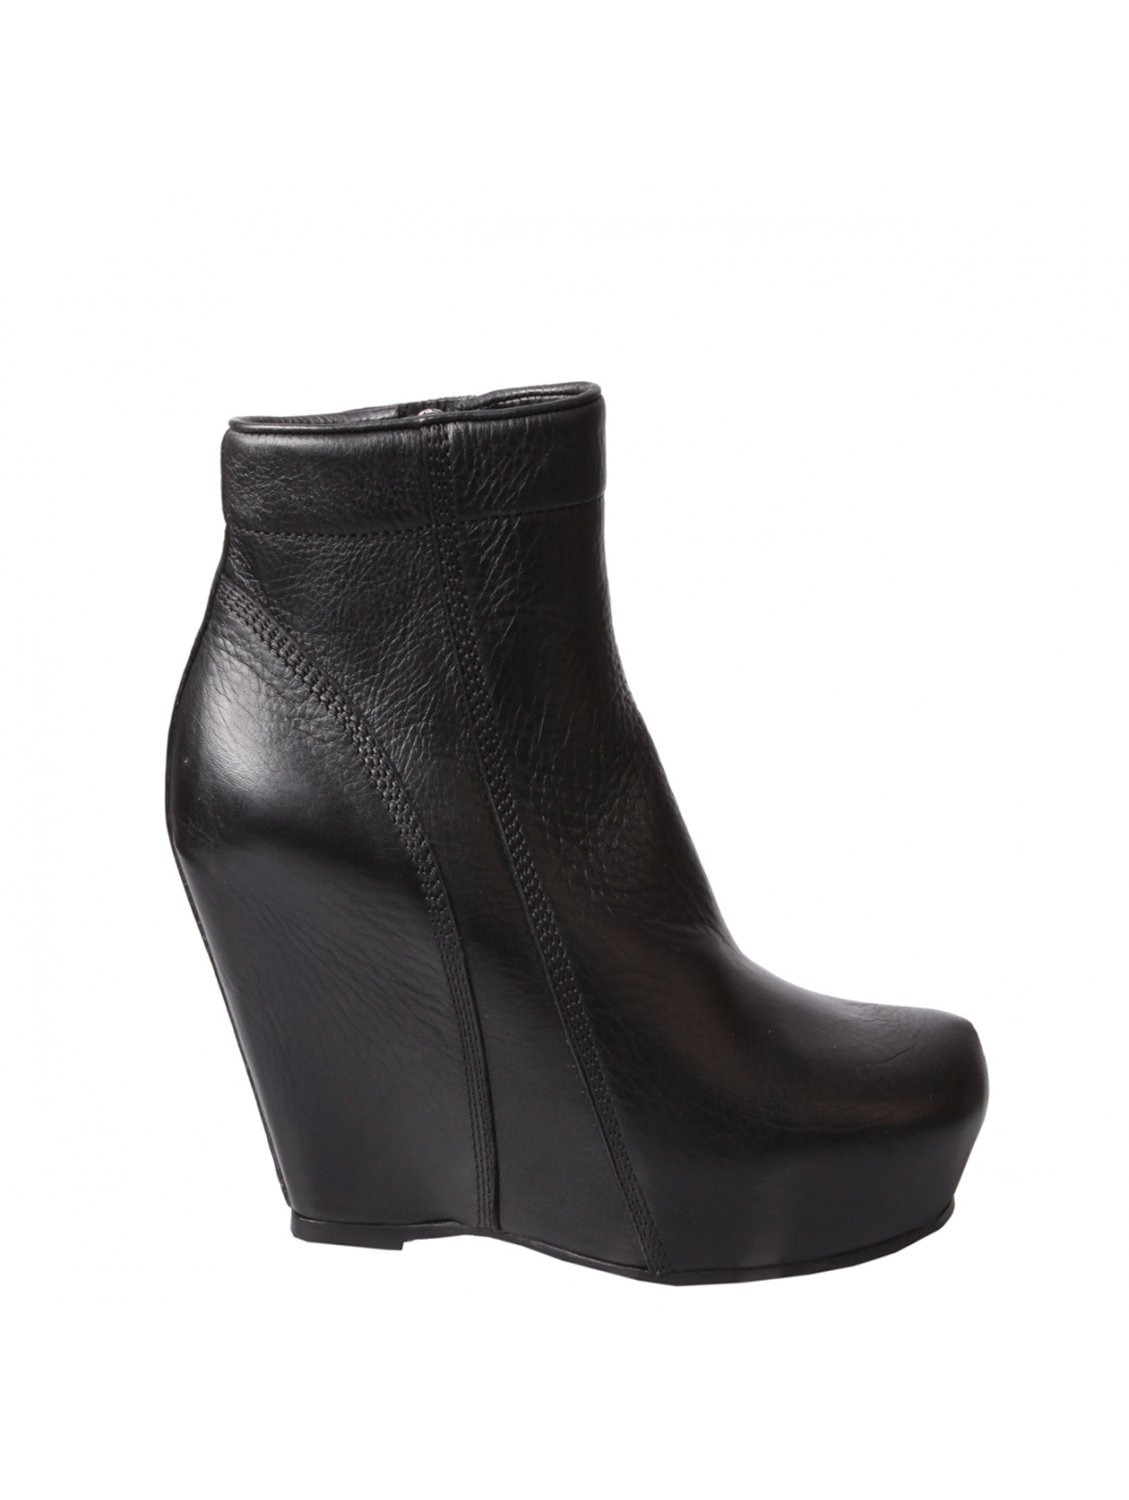 Rick owens Leather Wedge Ankle Boots in Black | Lyst